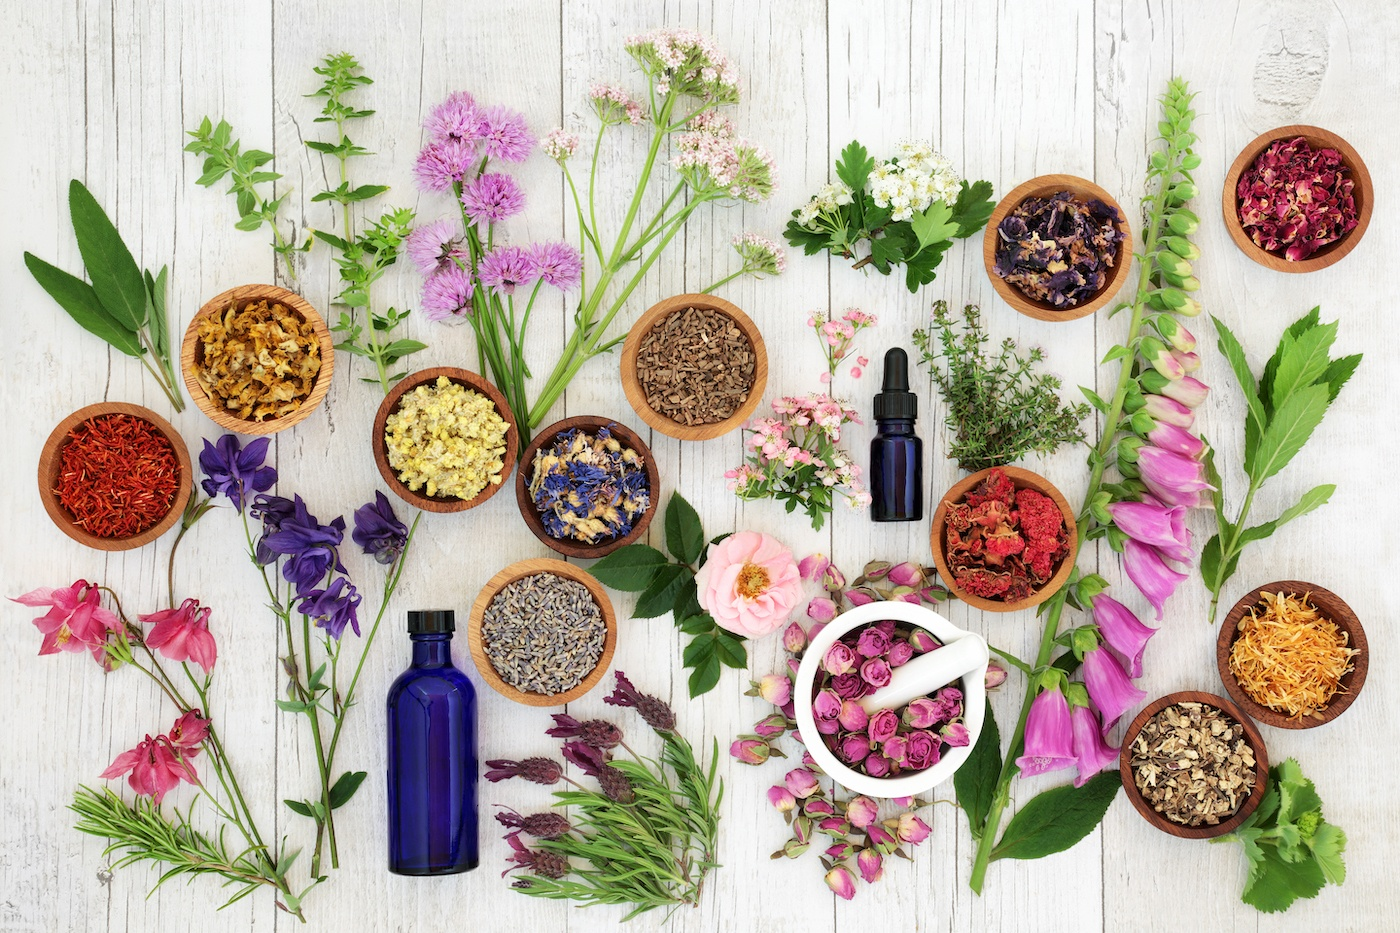 10 best essential oils and how to use them | Well+Good